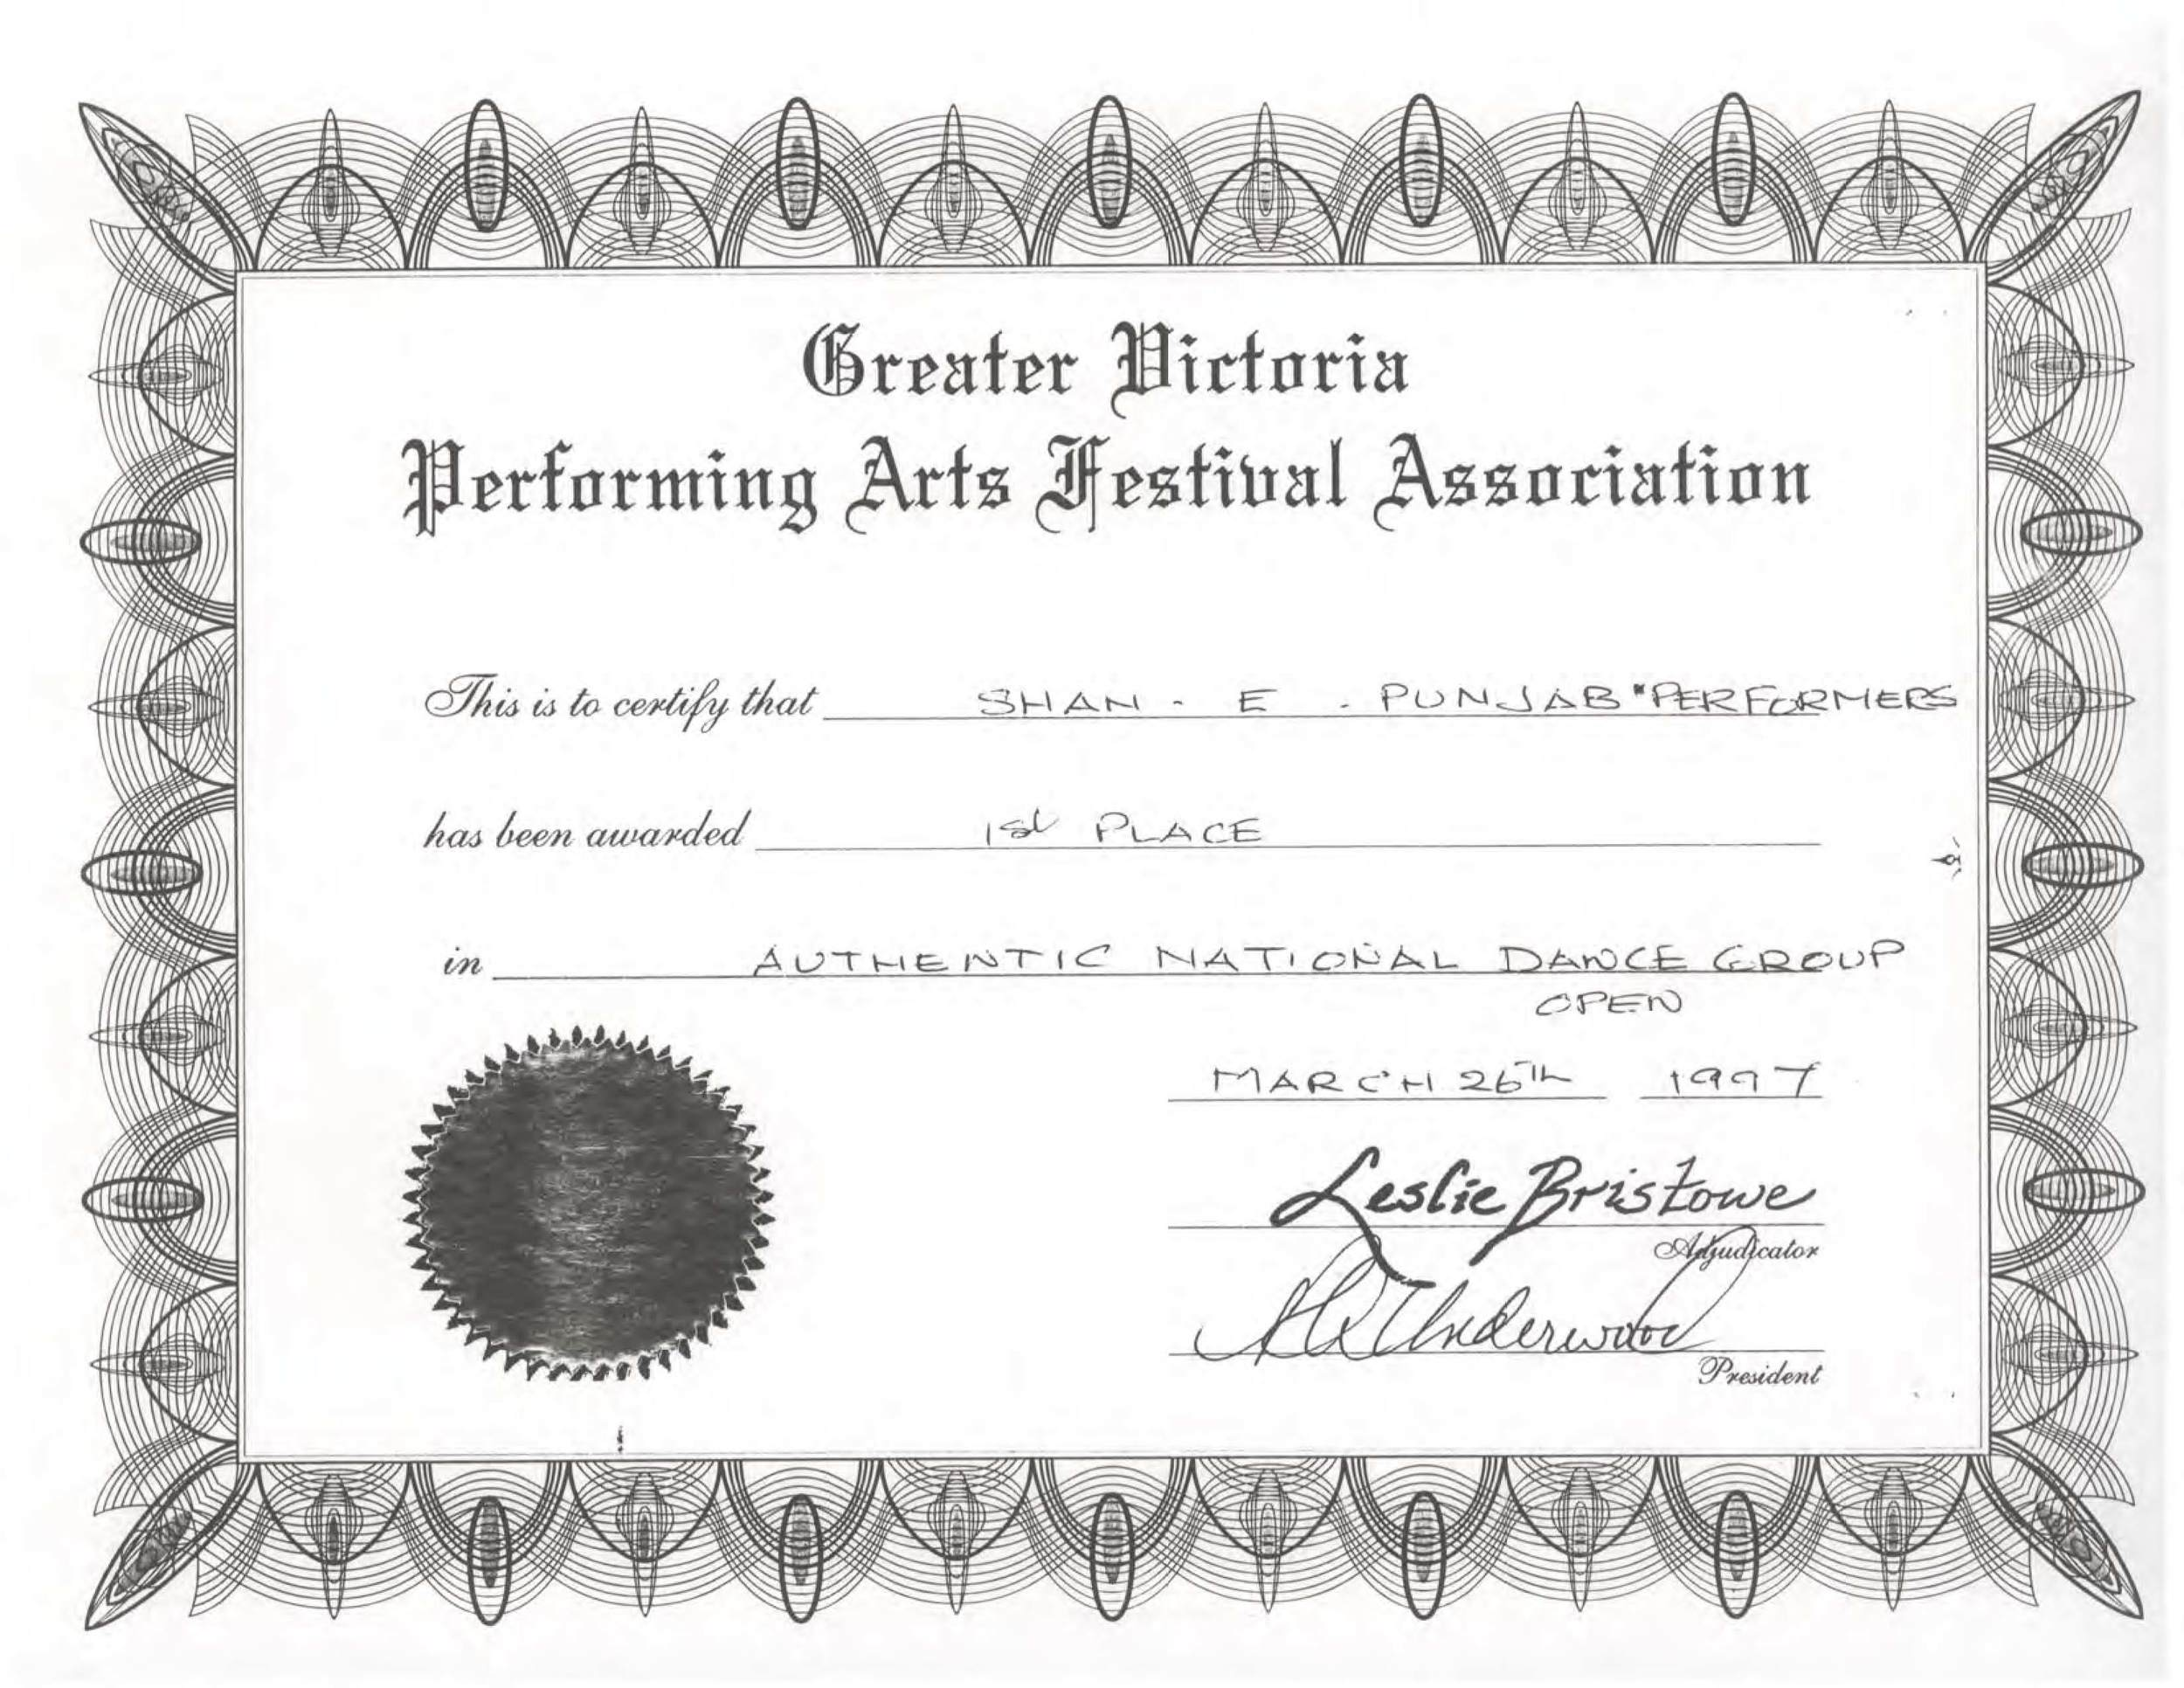 GVPAF 1997 First Place Certificate.jpg